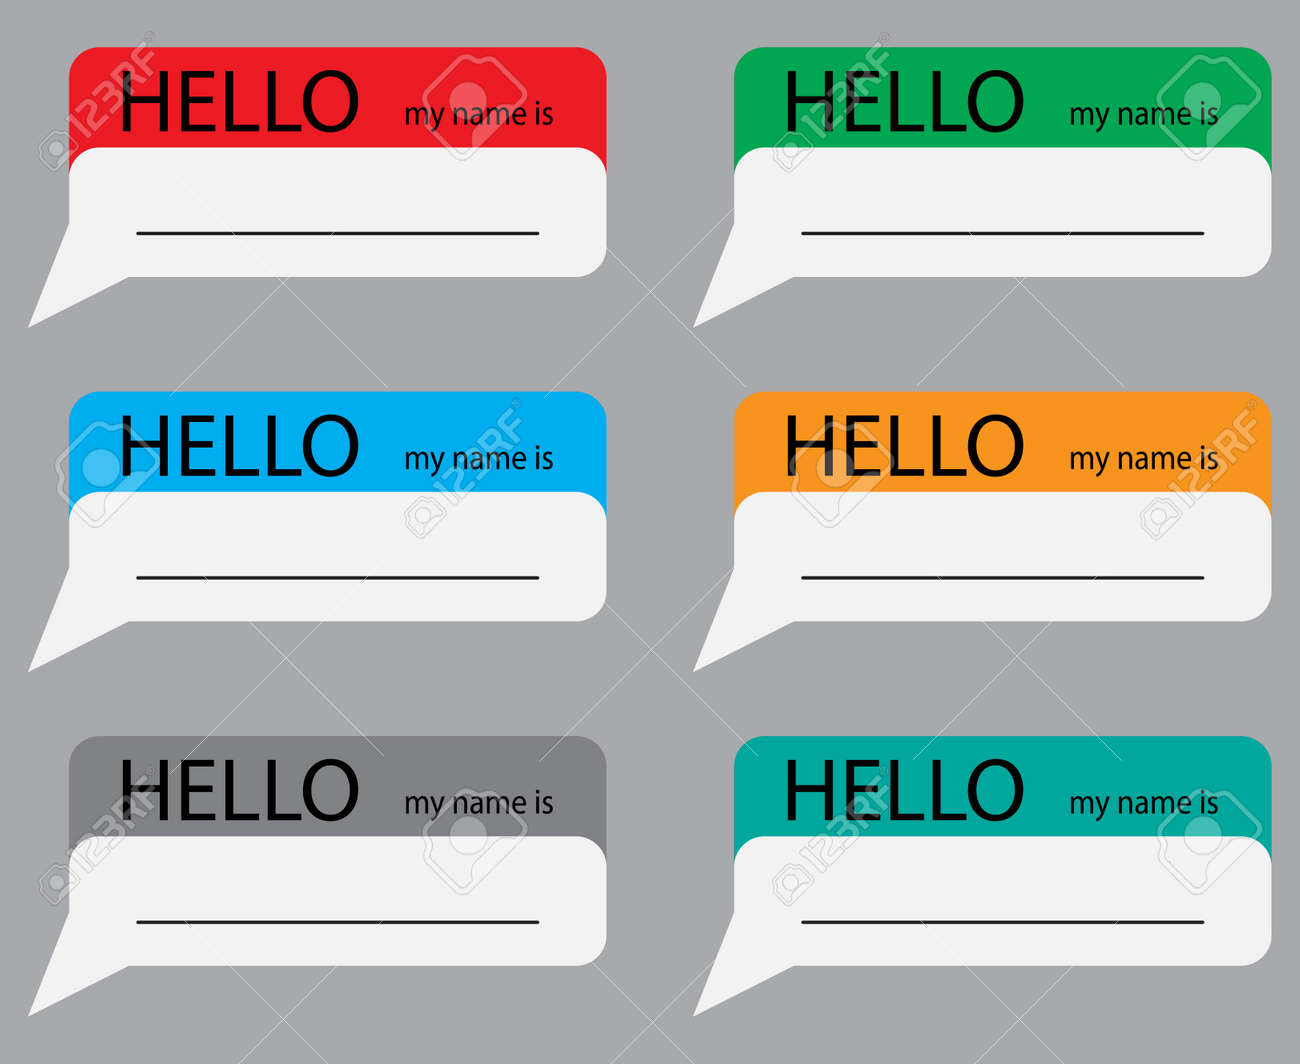 Indulging 53120876 Hello My Name Sticker Set Color Name Tag Name Card Baby Names Name Plate List Names My Name Is Id Hello My Name Is Tag Clipart Hello My Name Is Tagalog inspiration Hello My Name Is Tag